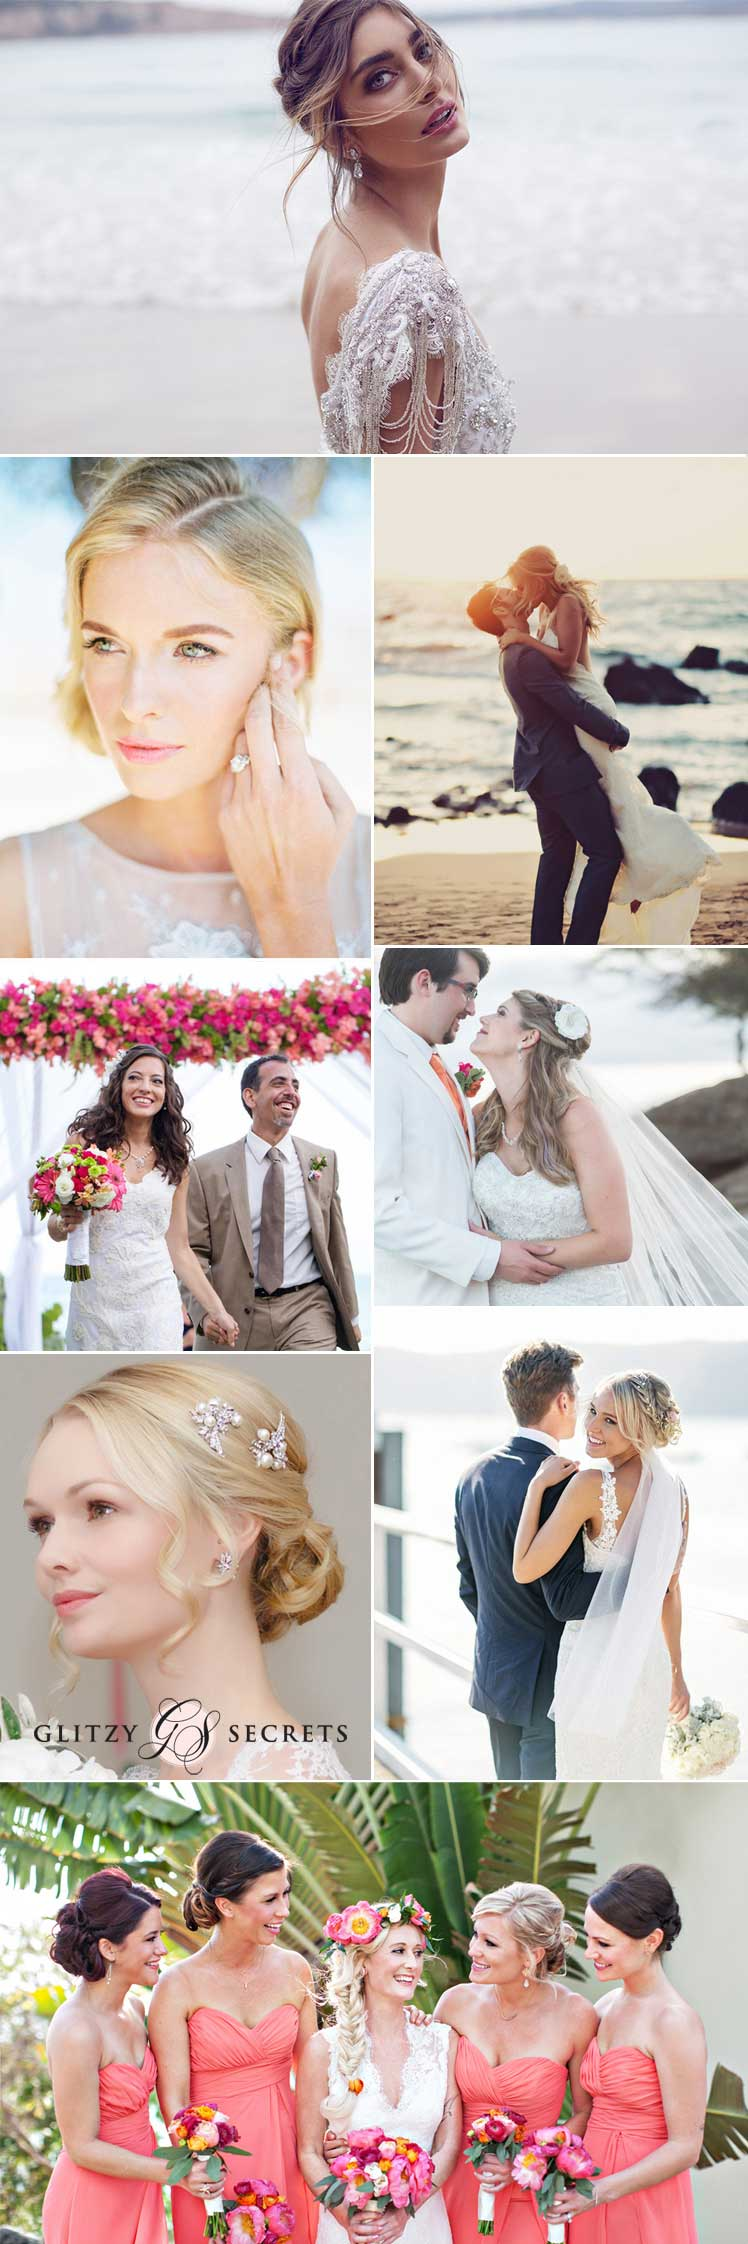 Hair and make-up ideas for a destination wedding